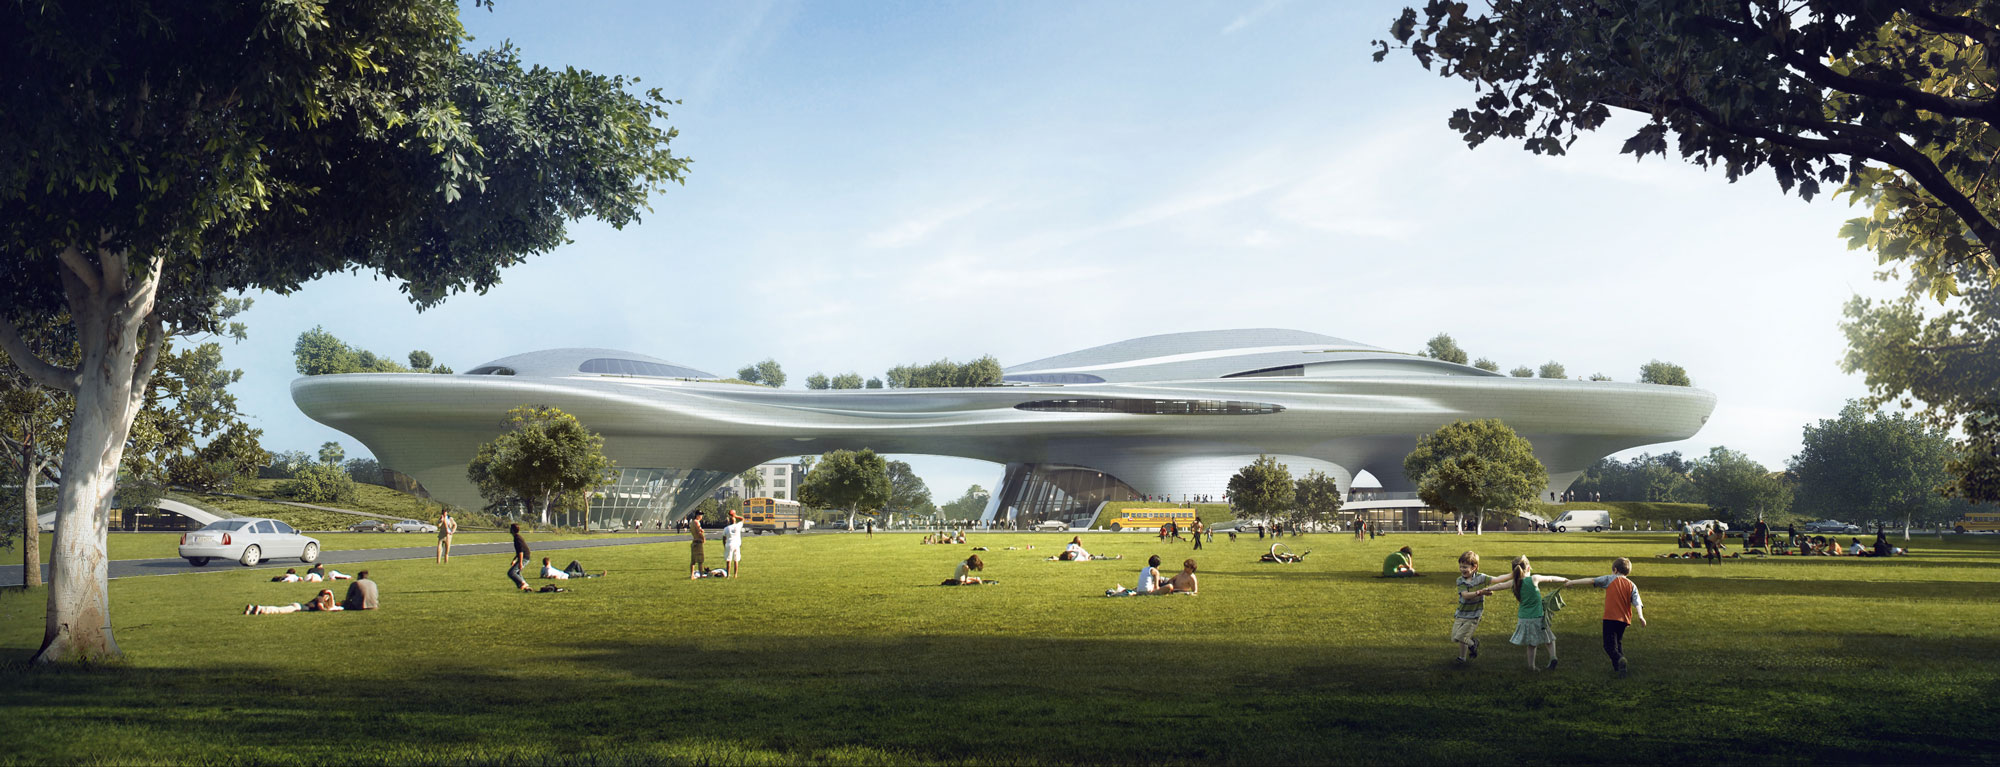 Rendering of the Lucas Museum of Narrative Arts new museum to be built in Los Angeles